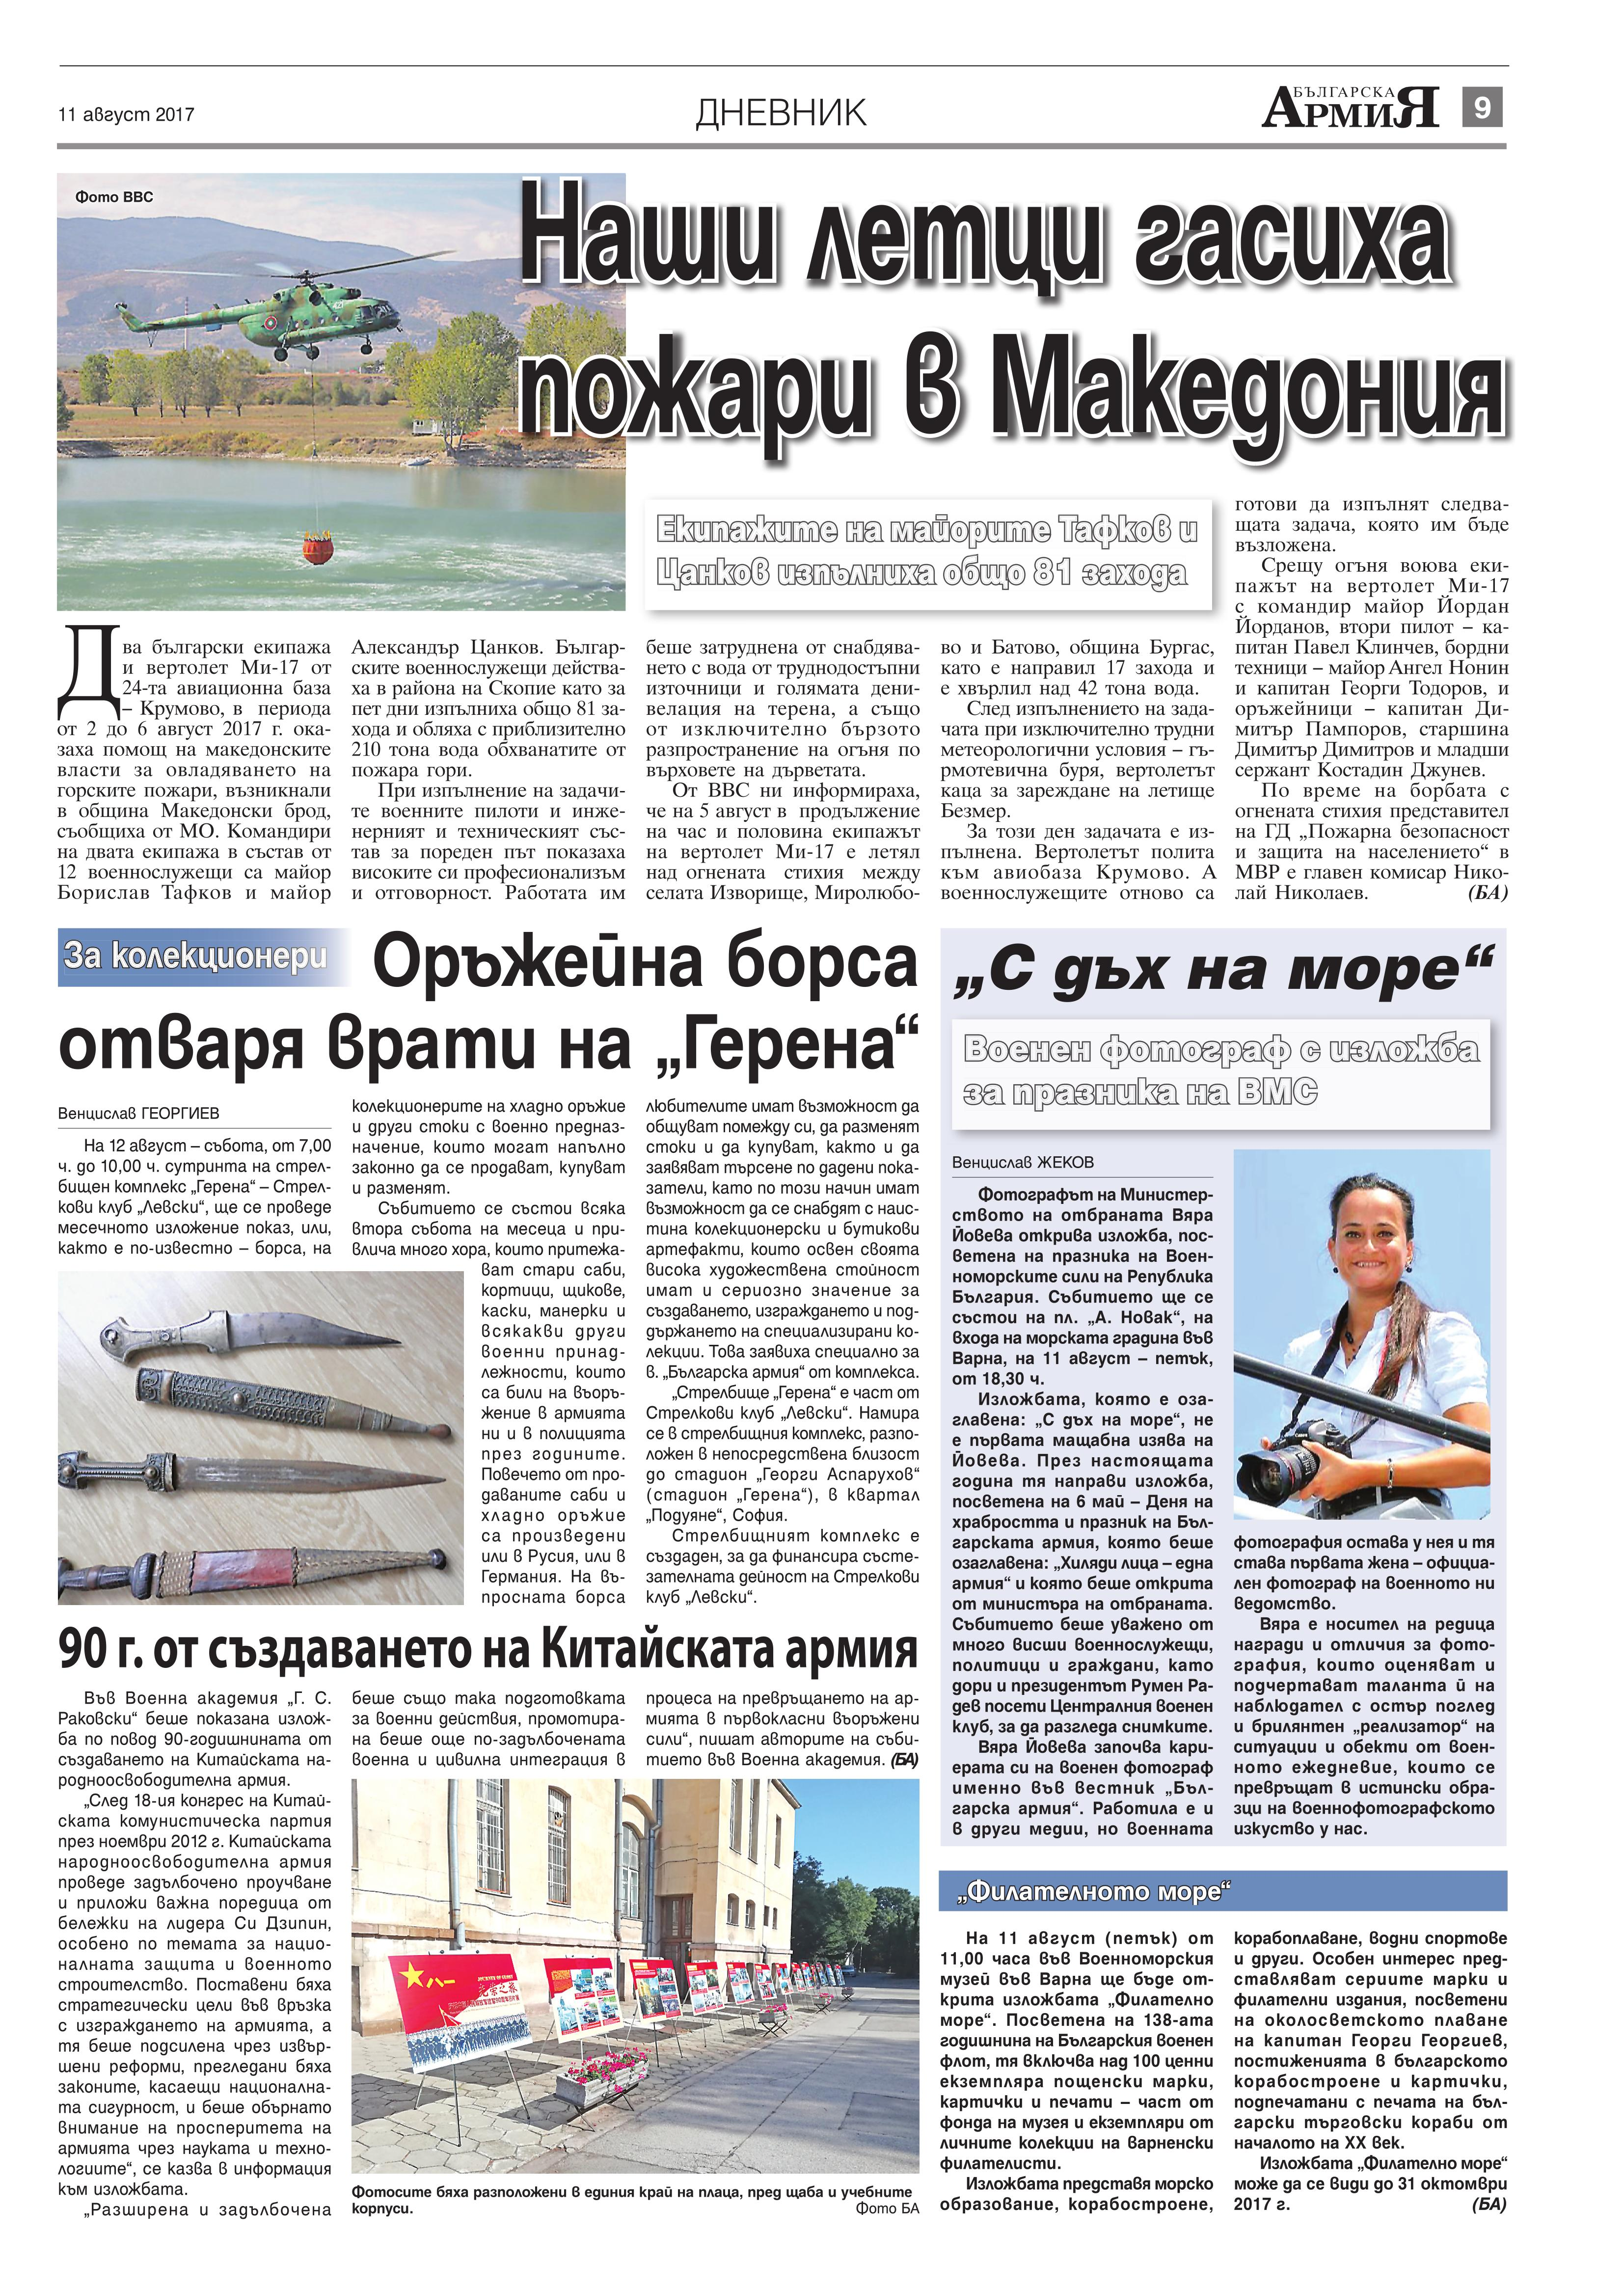 http://armymedia.bg/wp-content/uploads/2015/06/09.page1_-28.jpg